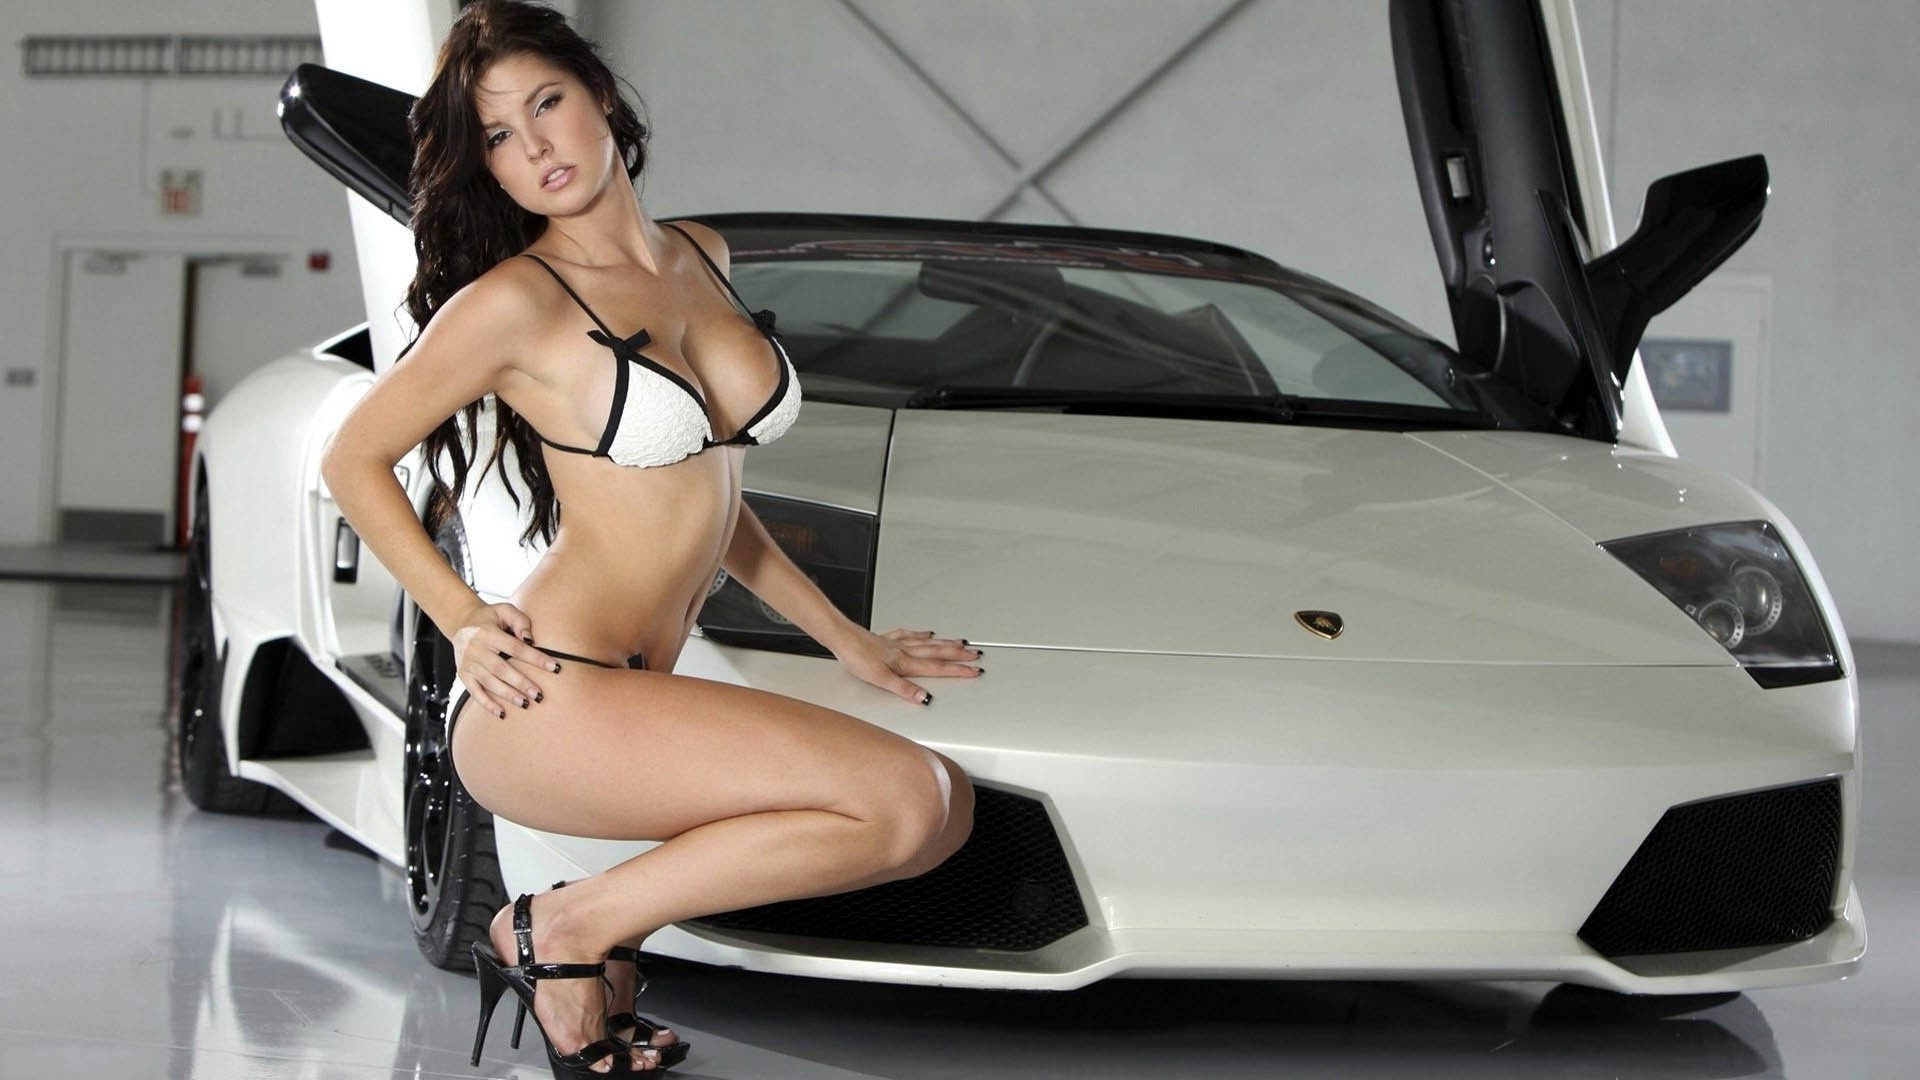 cars and girls woman sexy car fashion vehicle pretty indoors